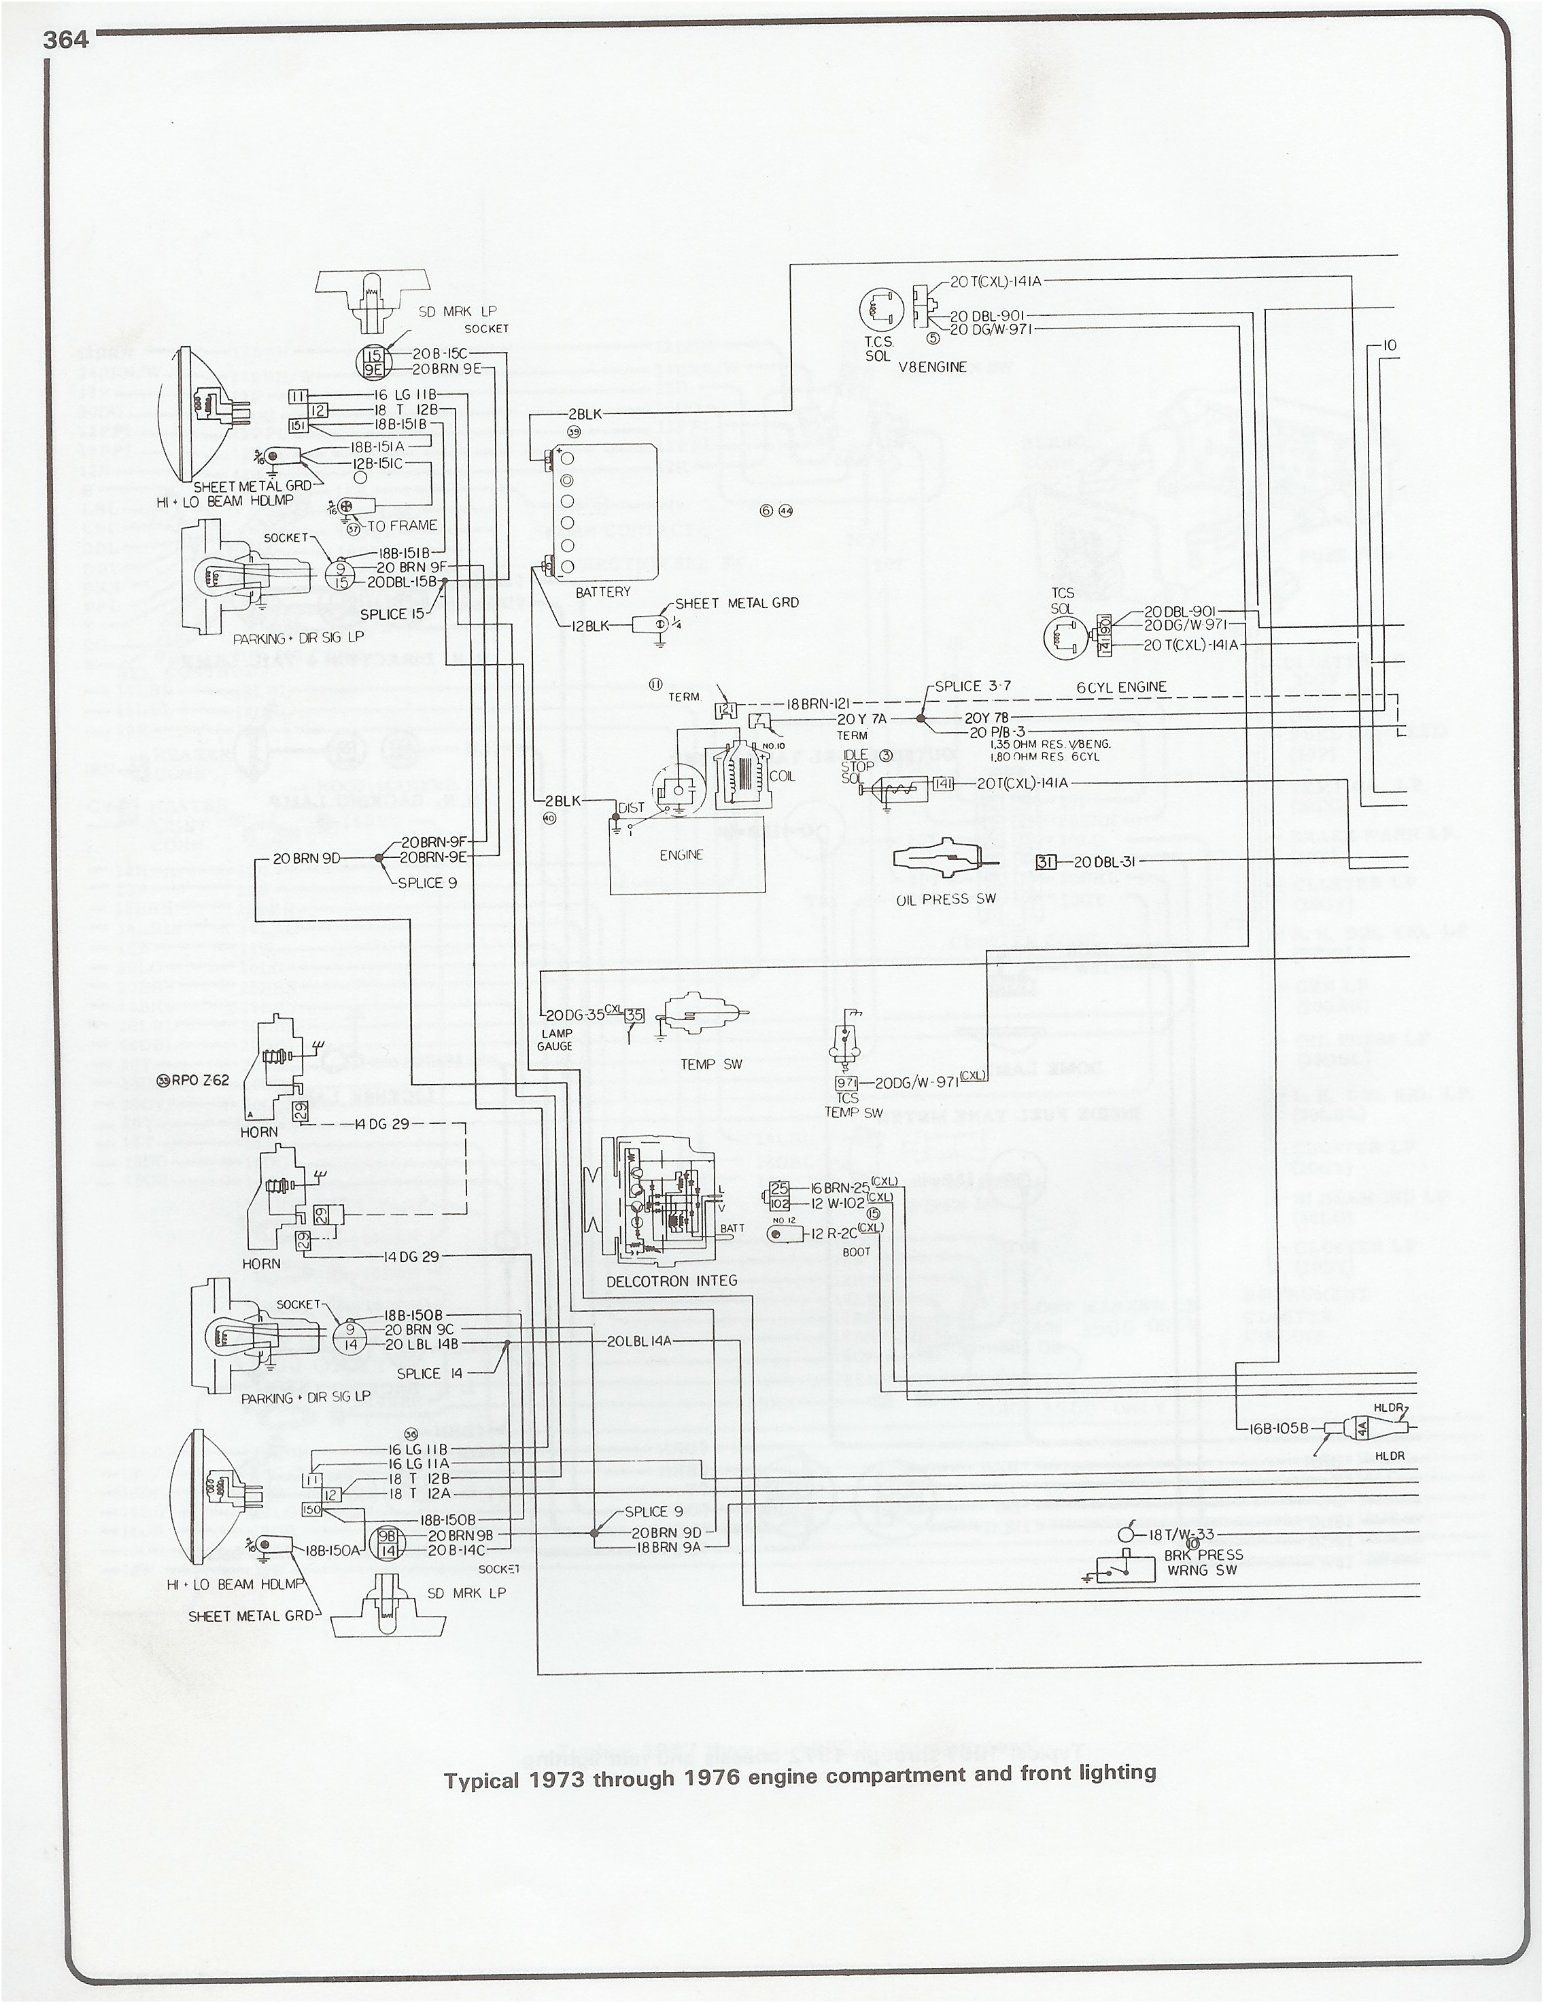 hight resolution of wiring diagram 1973 1976 chevy pickup chevy wiring diagramwiring diagram 1973 1976 chevy pickup chevy wiring